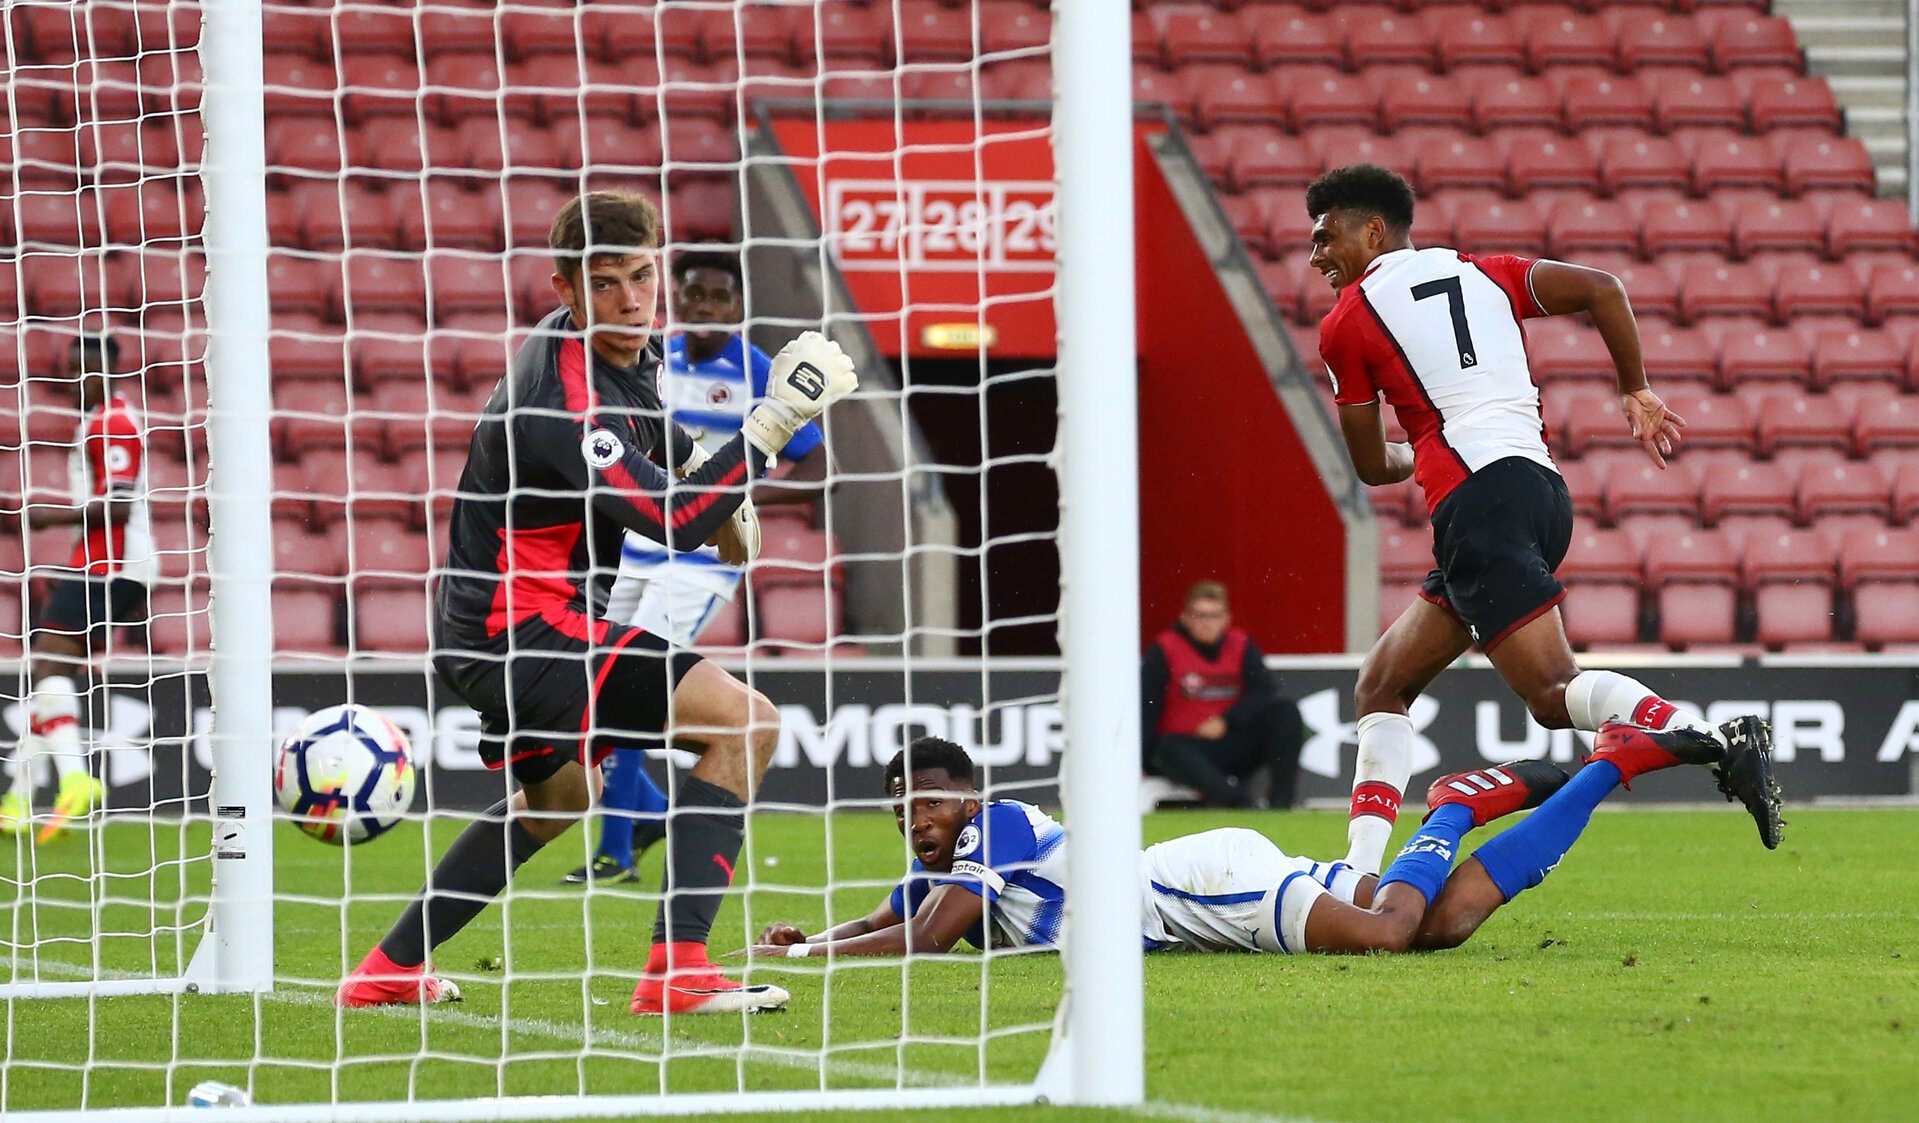 Marcus Barnes scores during the U23 Premier League 2 match between Southampton(red/white) and Reading, at St Mary's Stadium, 14th August 2017